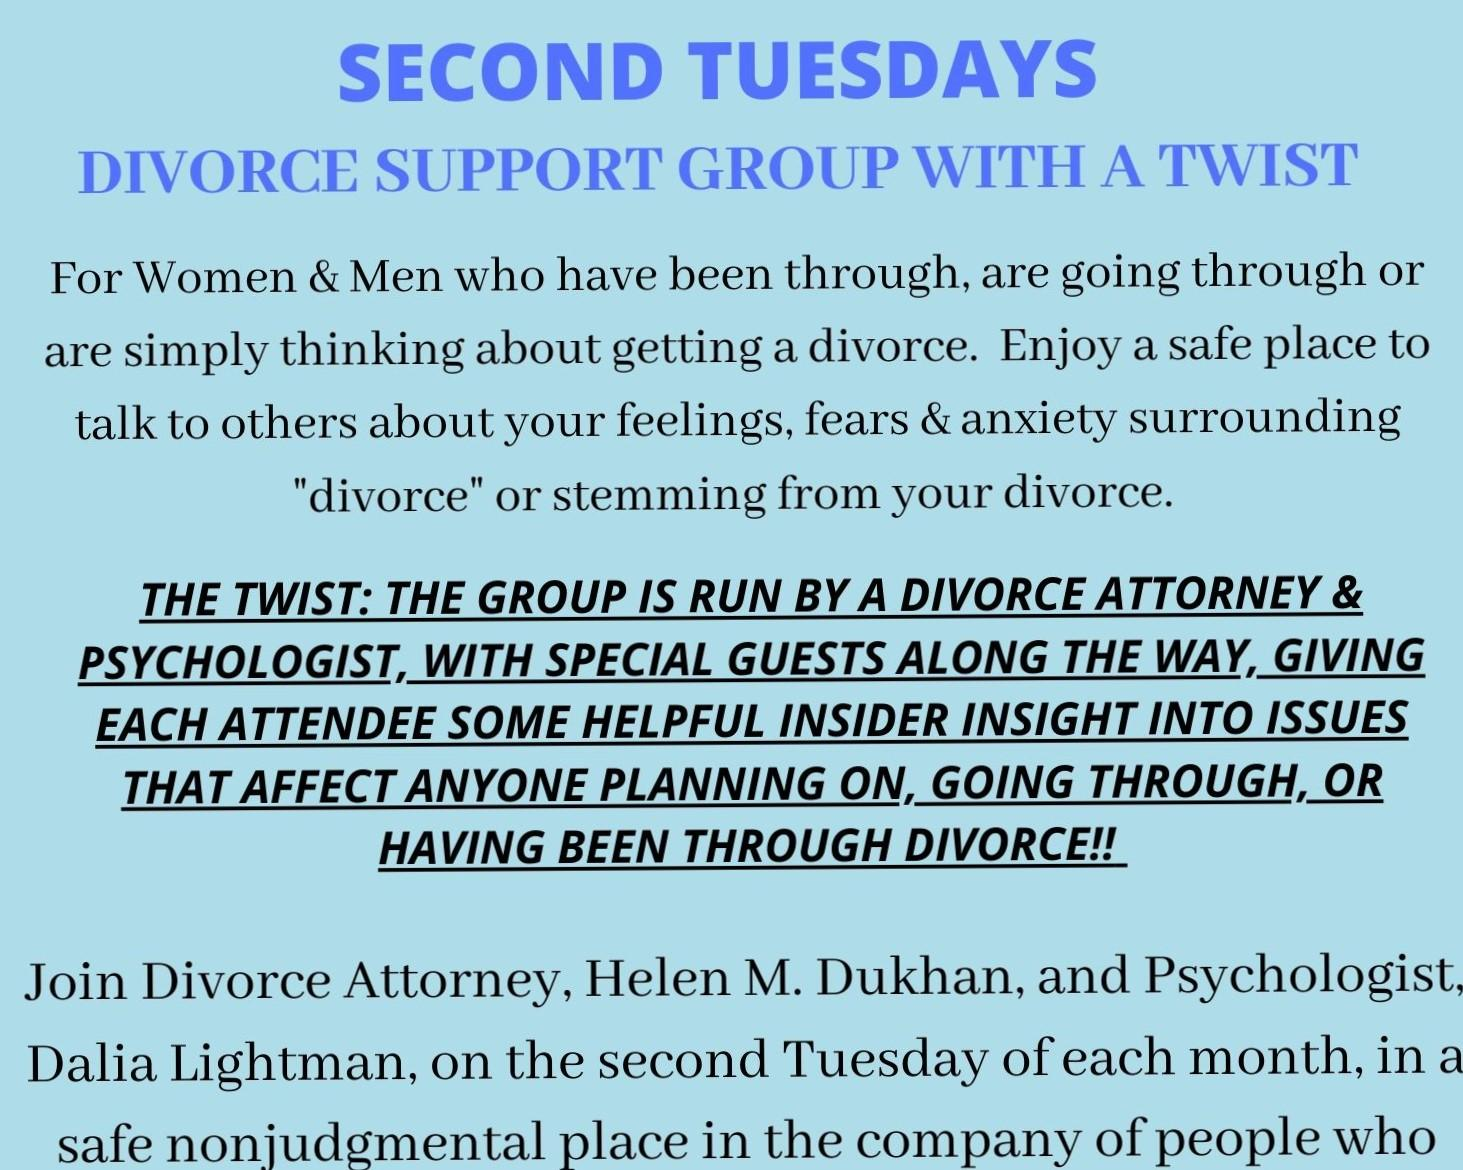 SECOND TUESDAYS DIVORCE SUPPORT GROUP